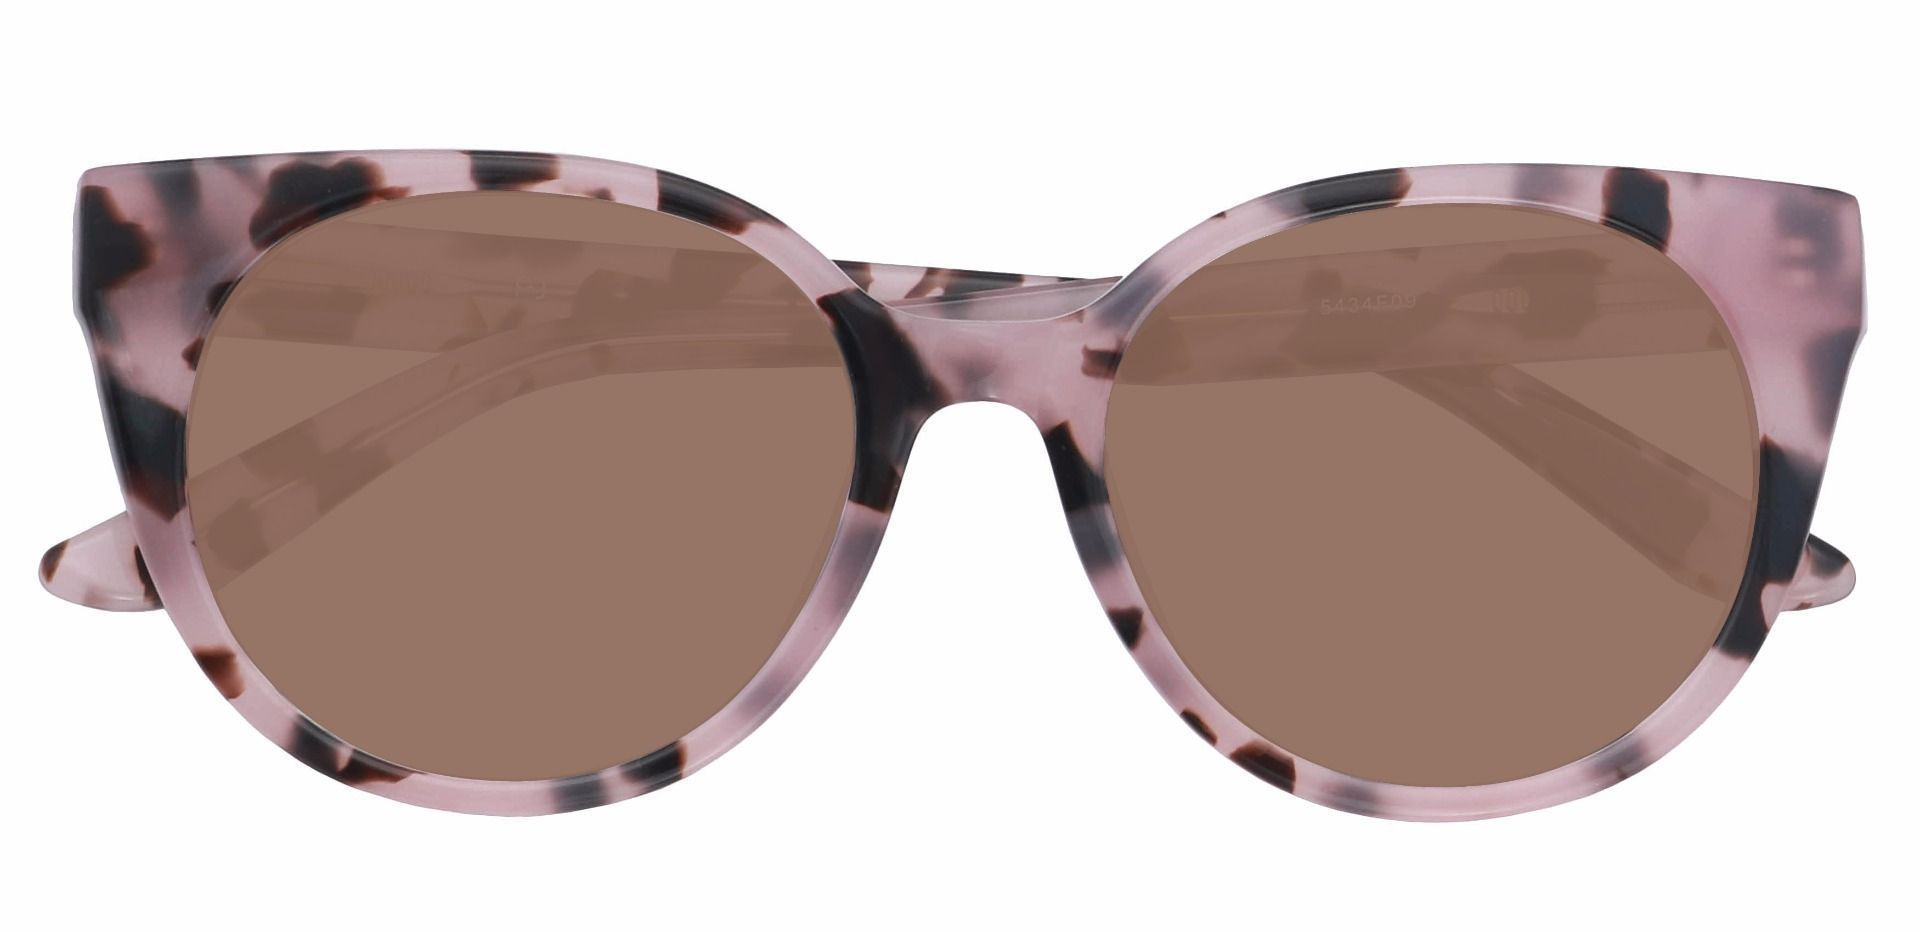 Balmoral Cat-Eye Reading Sunglasses - Floral Frame With Brown Lenses